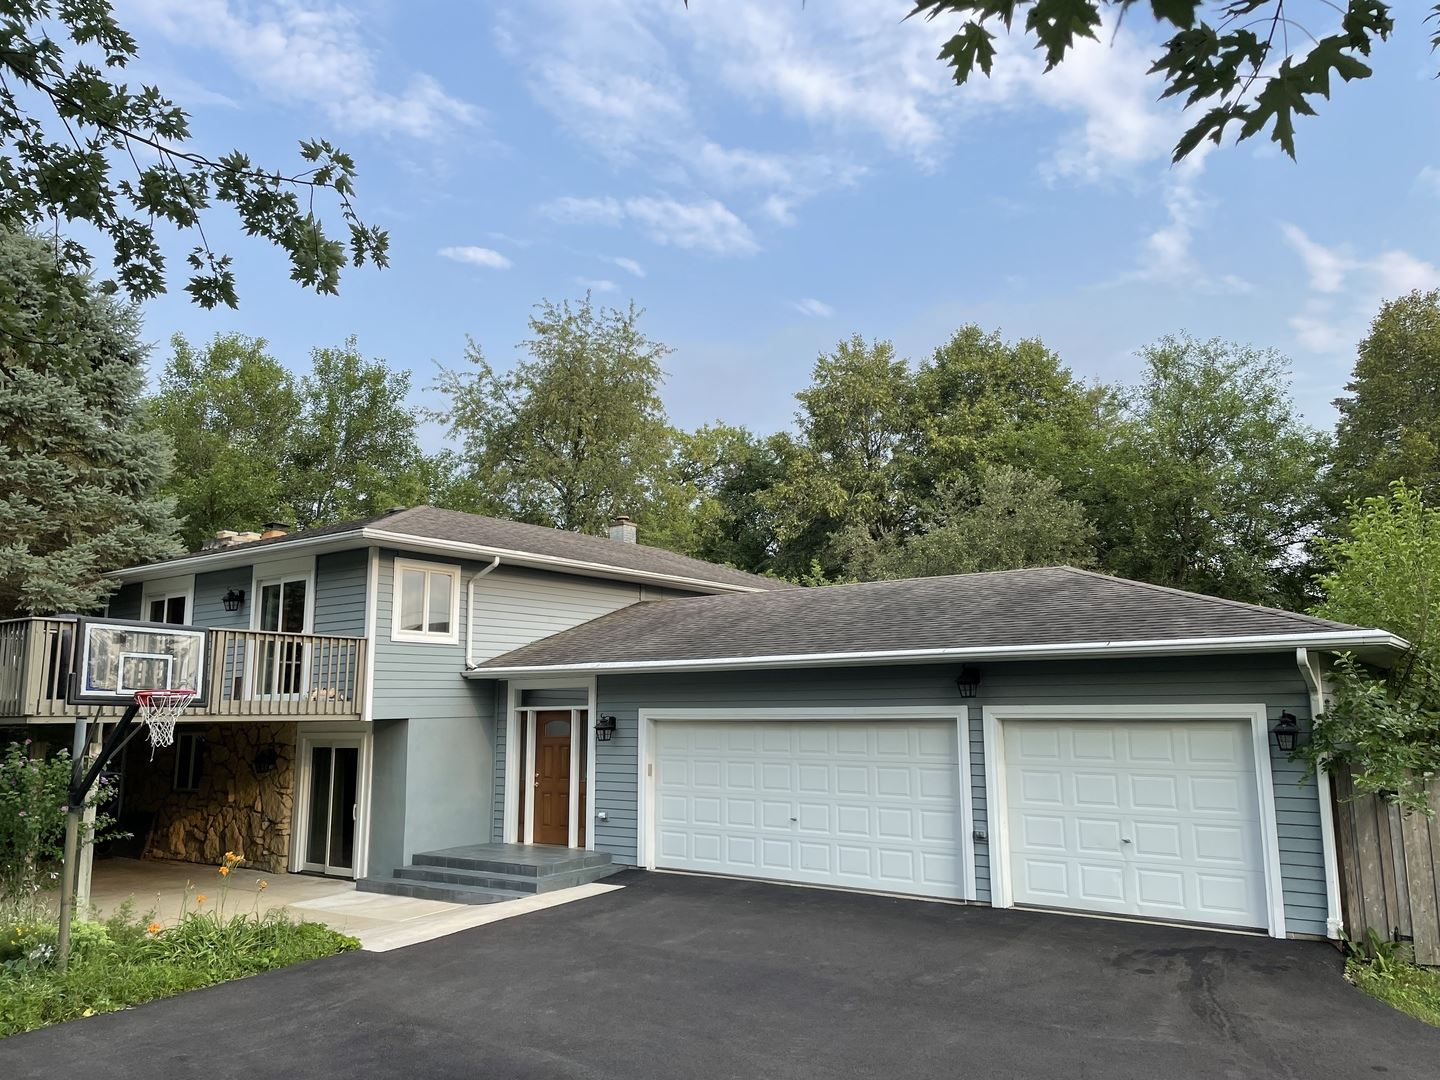 24475 N Hickory nut grove Road, Cary, IL 60013 - #: 11176661